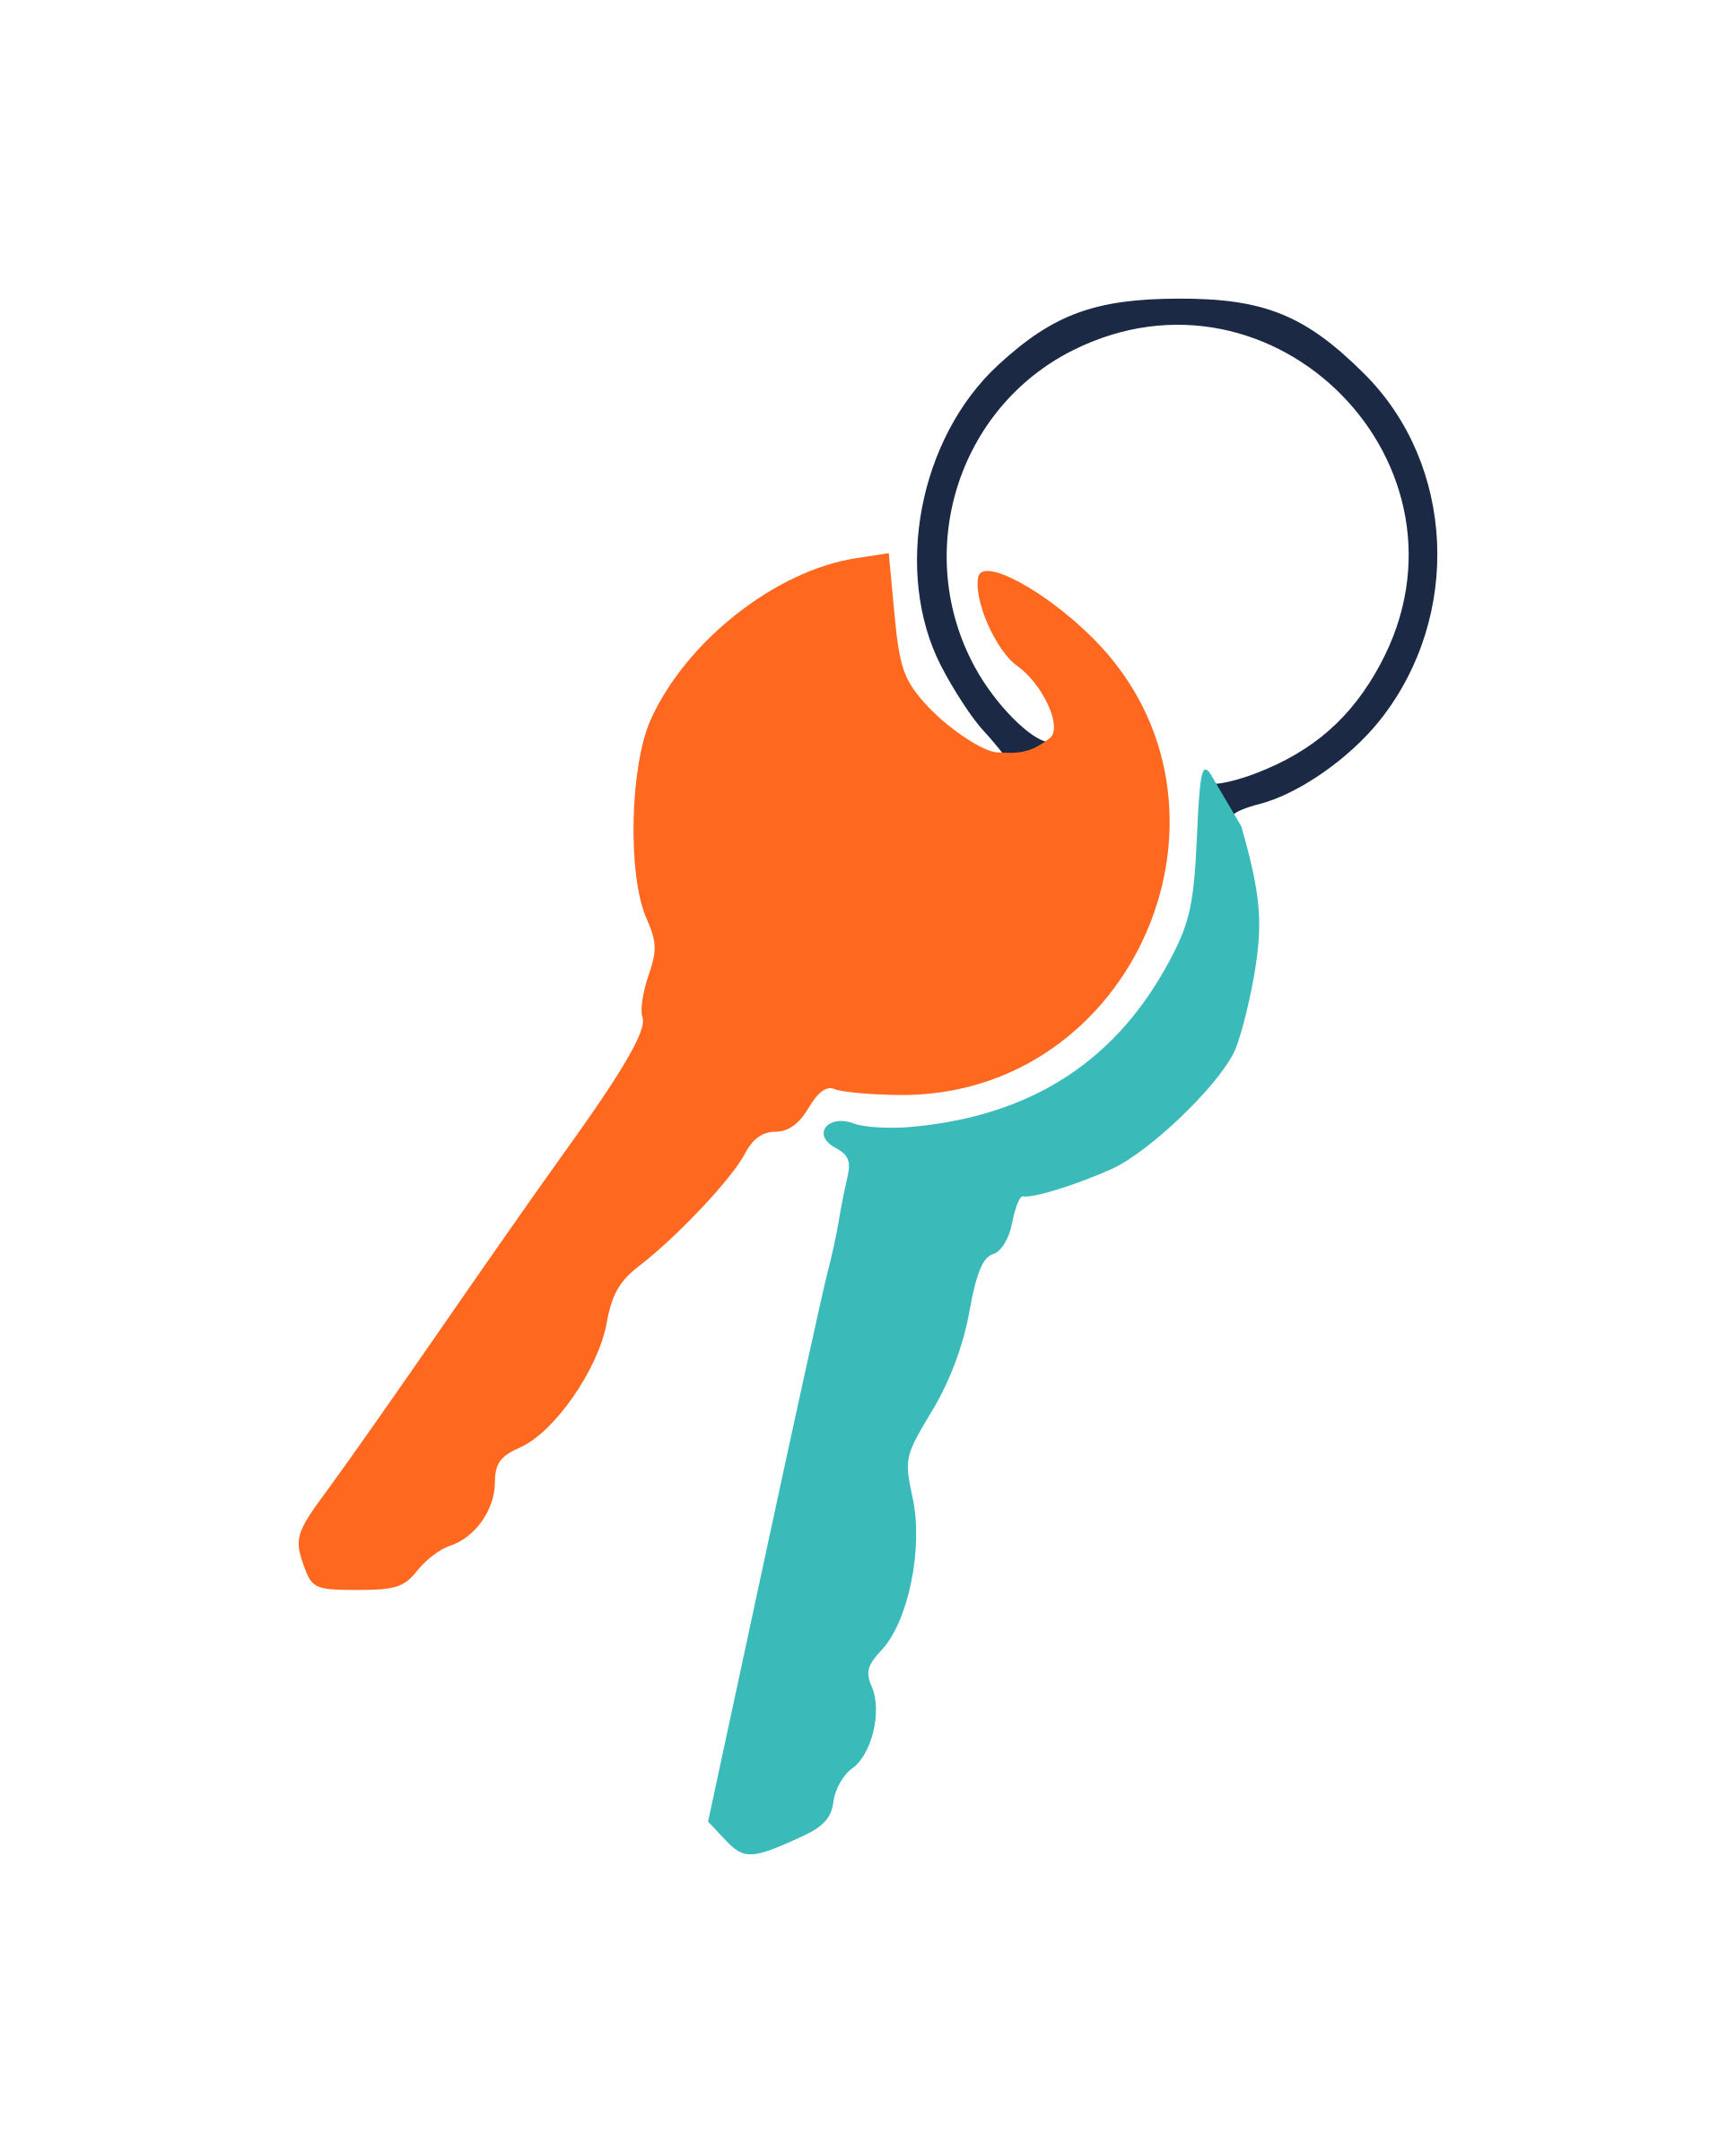 keys icon by ben